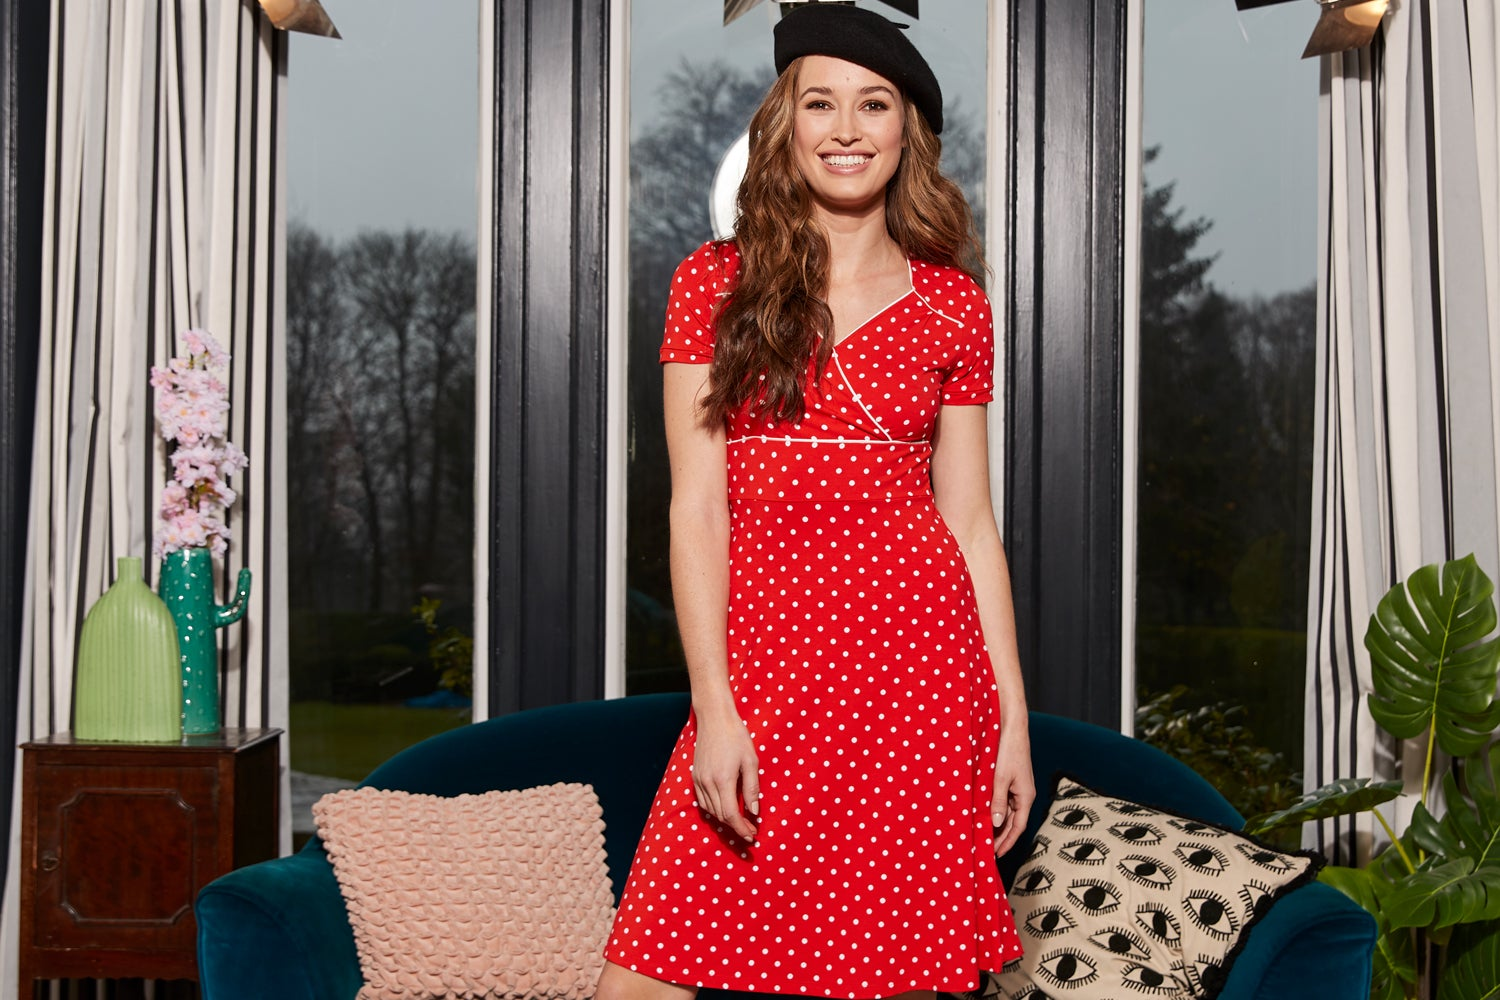 Go Dotty For a Sale Bargain in Our Outlet Store